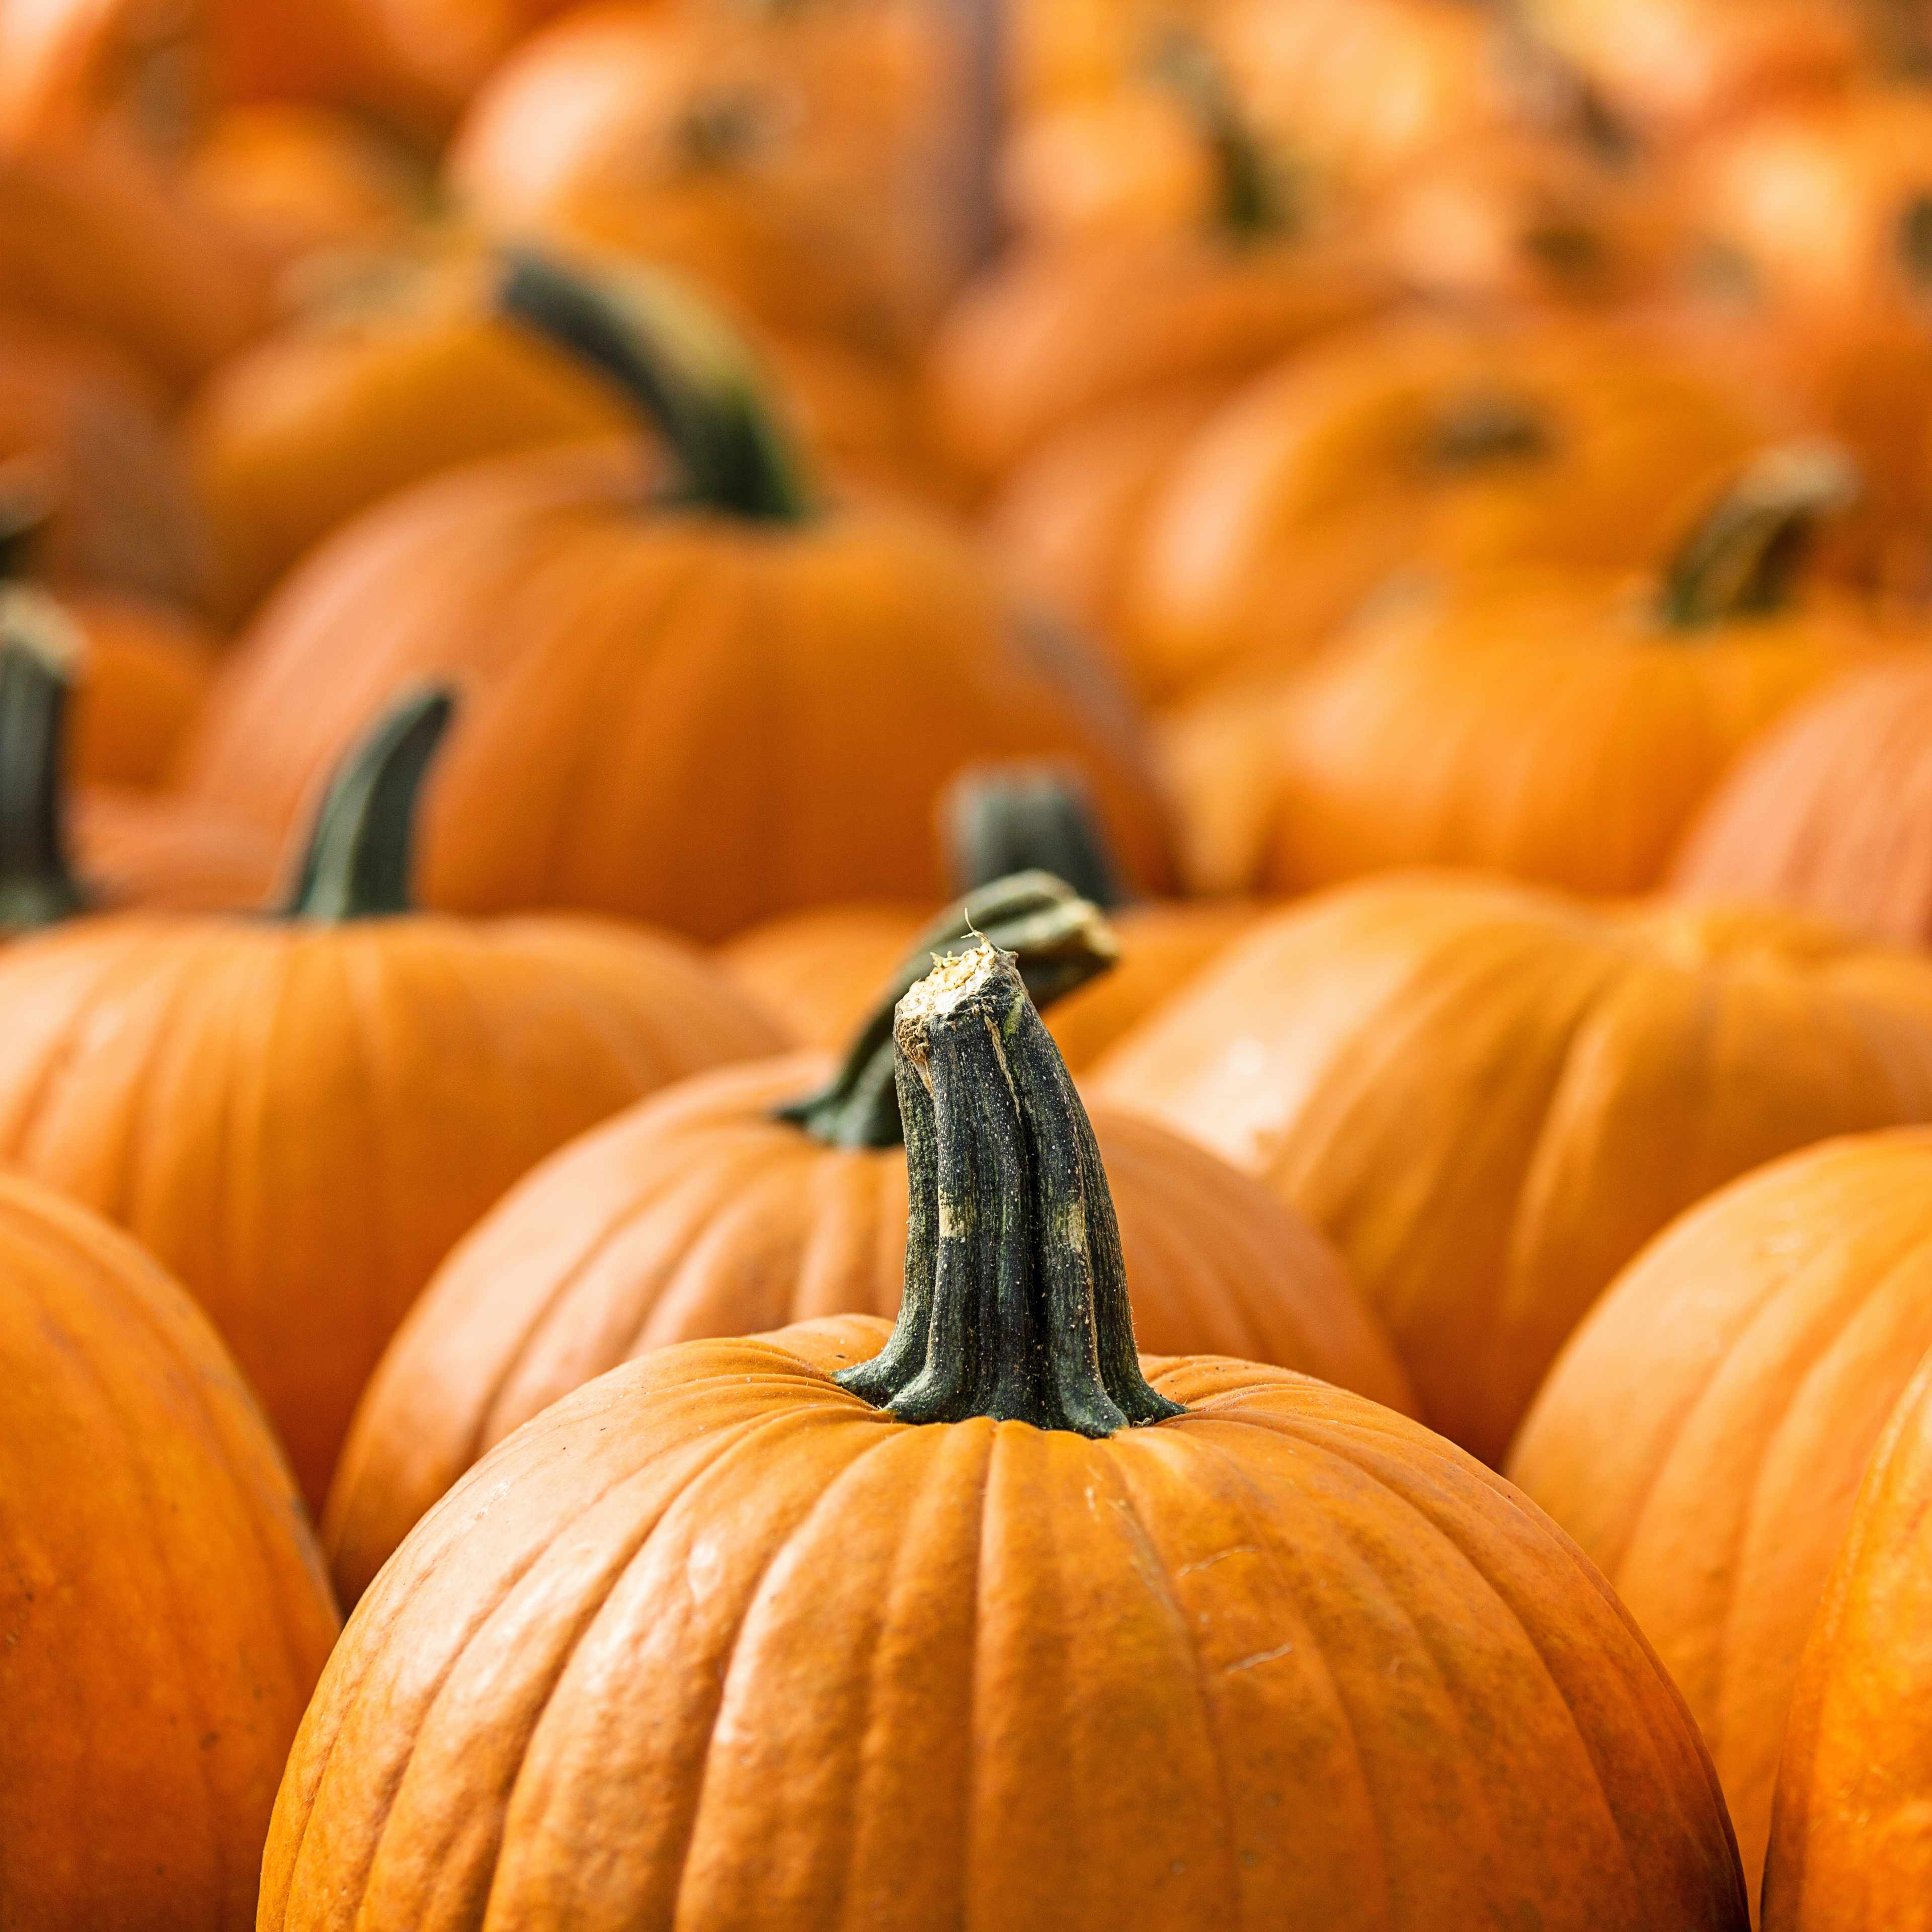 a close-up of a crowd of pumpkins